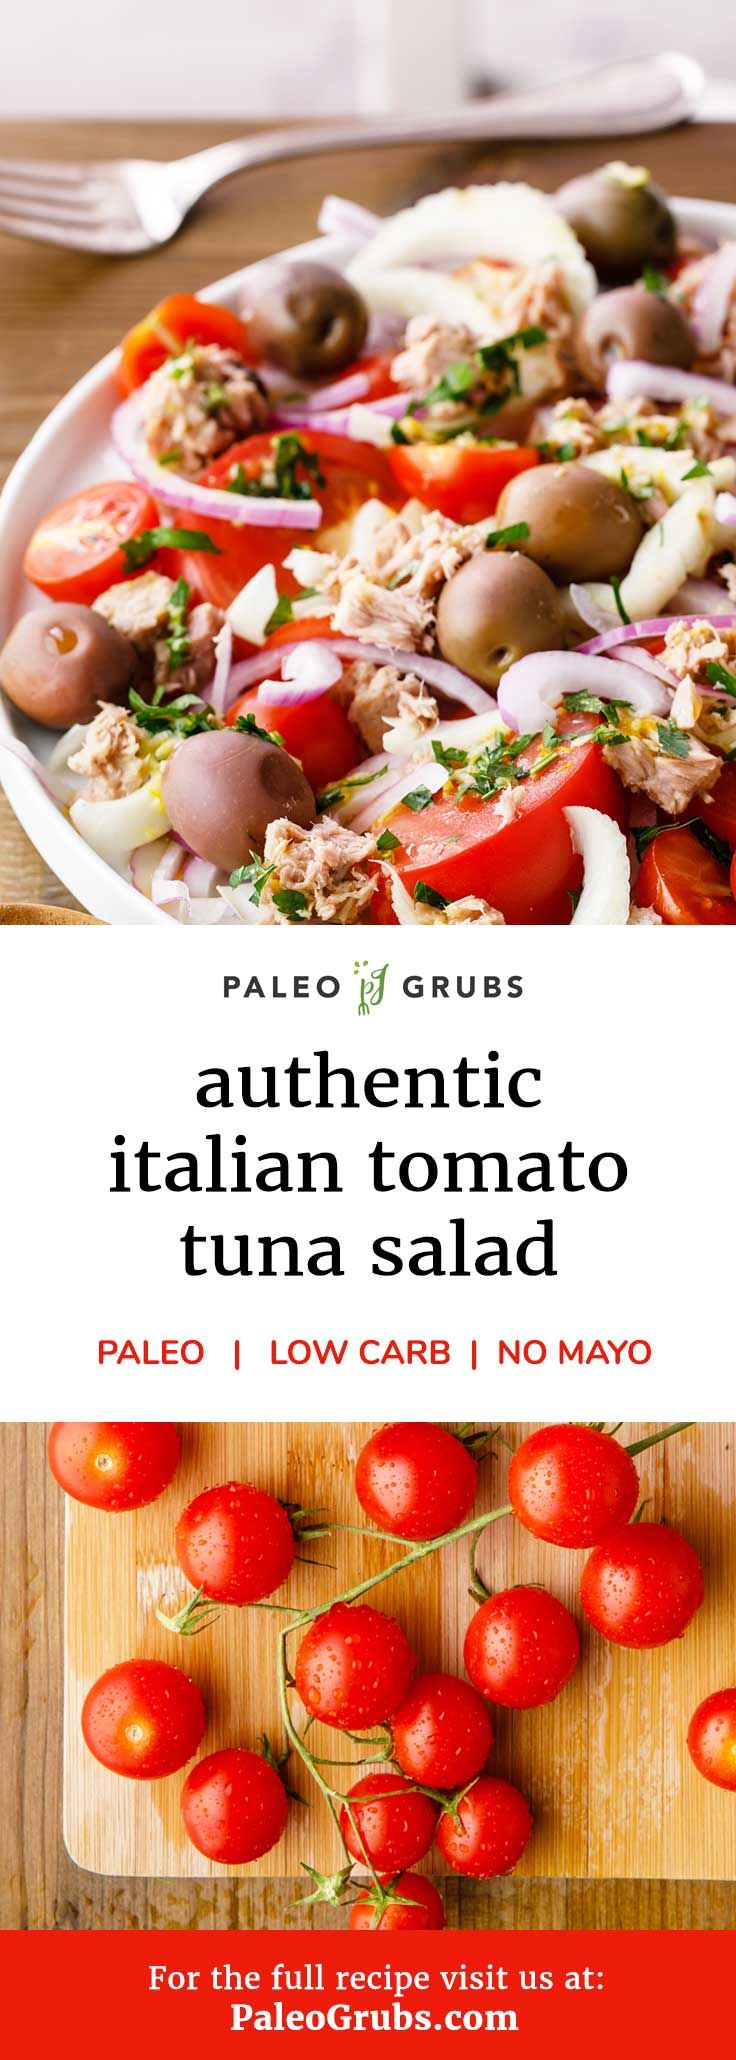 Add this quick and easy tuna salad recipe to your healthy recipe collection! Light, yummy, low carb and satisfying.